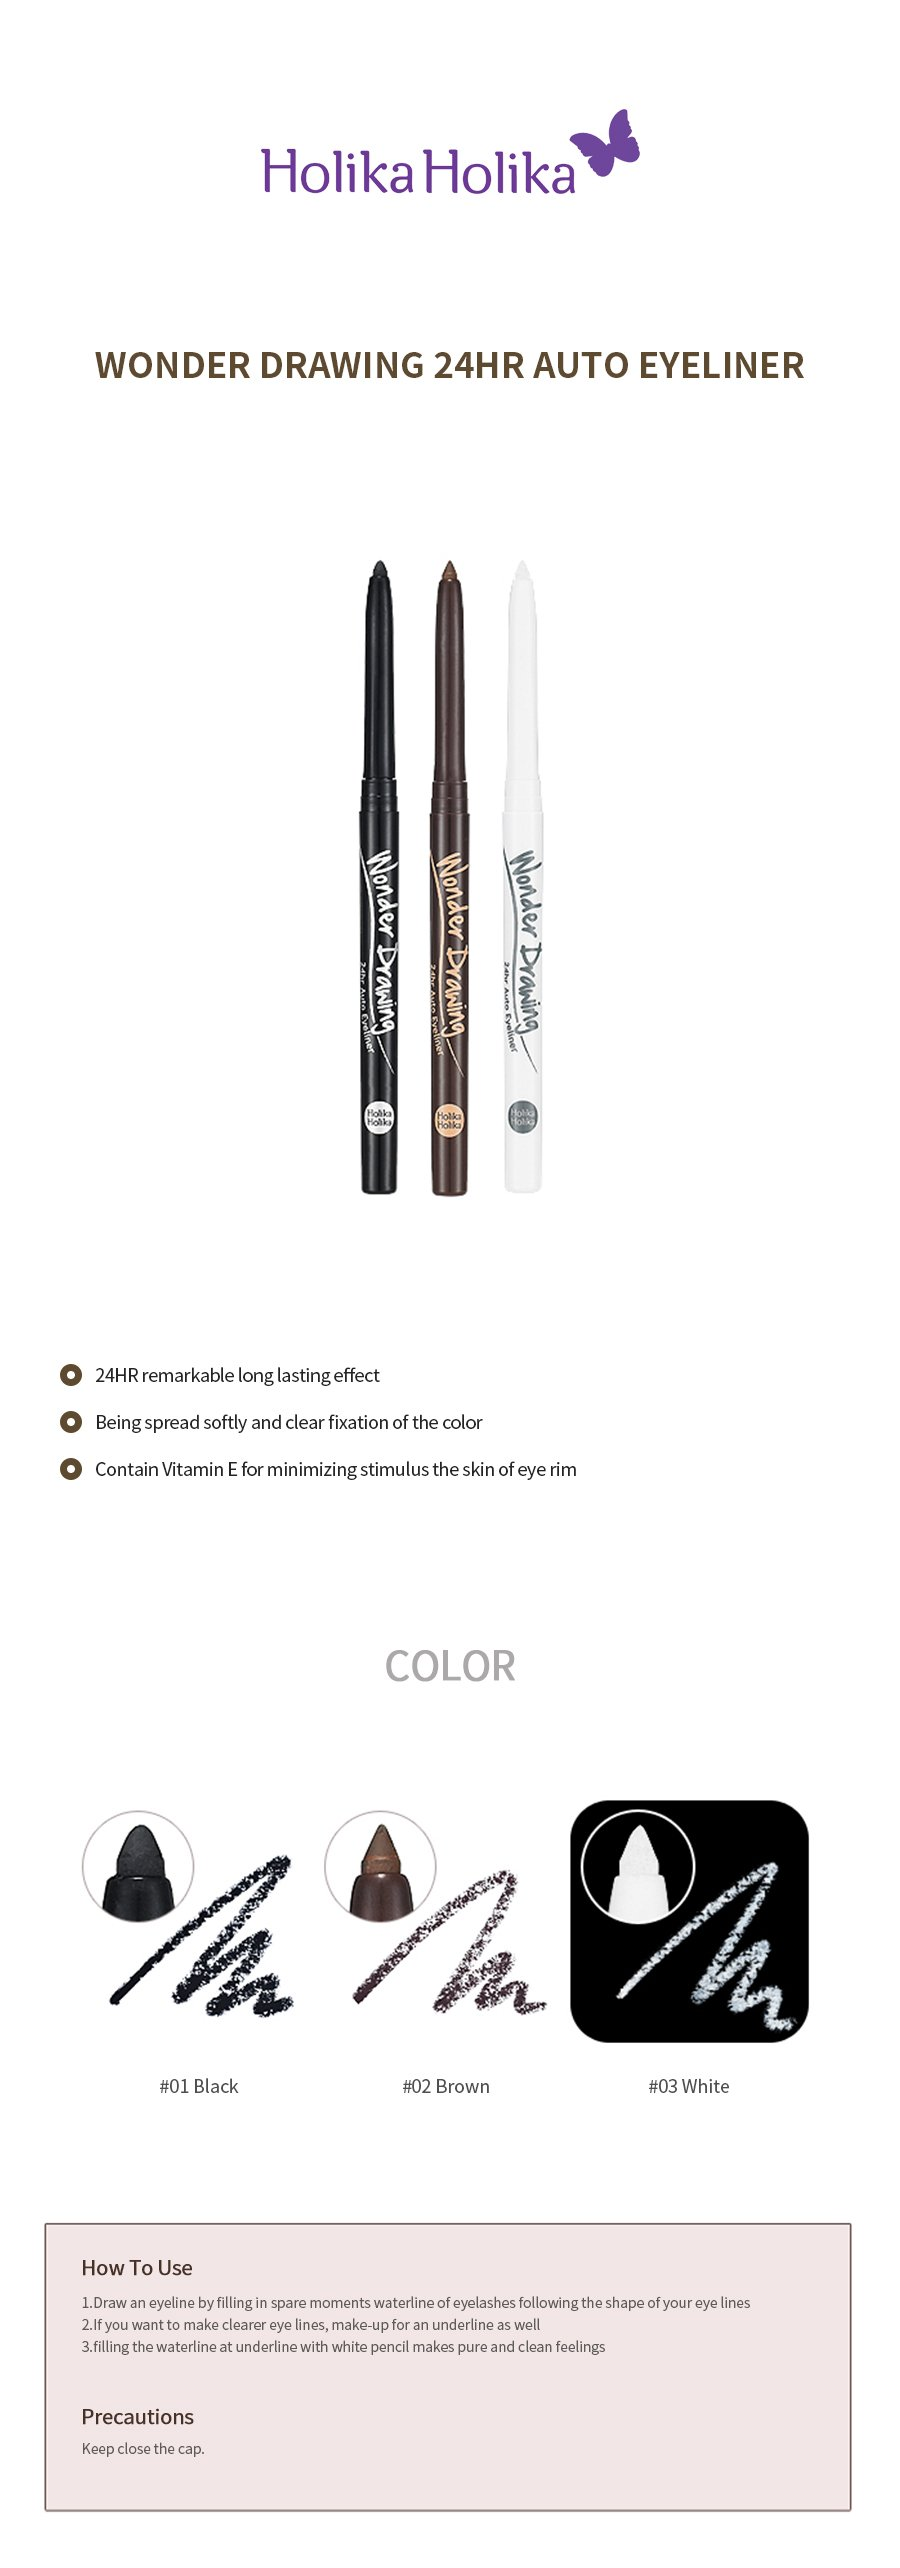 Wonder Drawing 24Hr Auto Eyeliner 10g How to use Description Ingredients